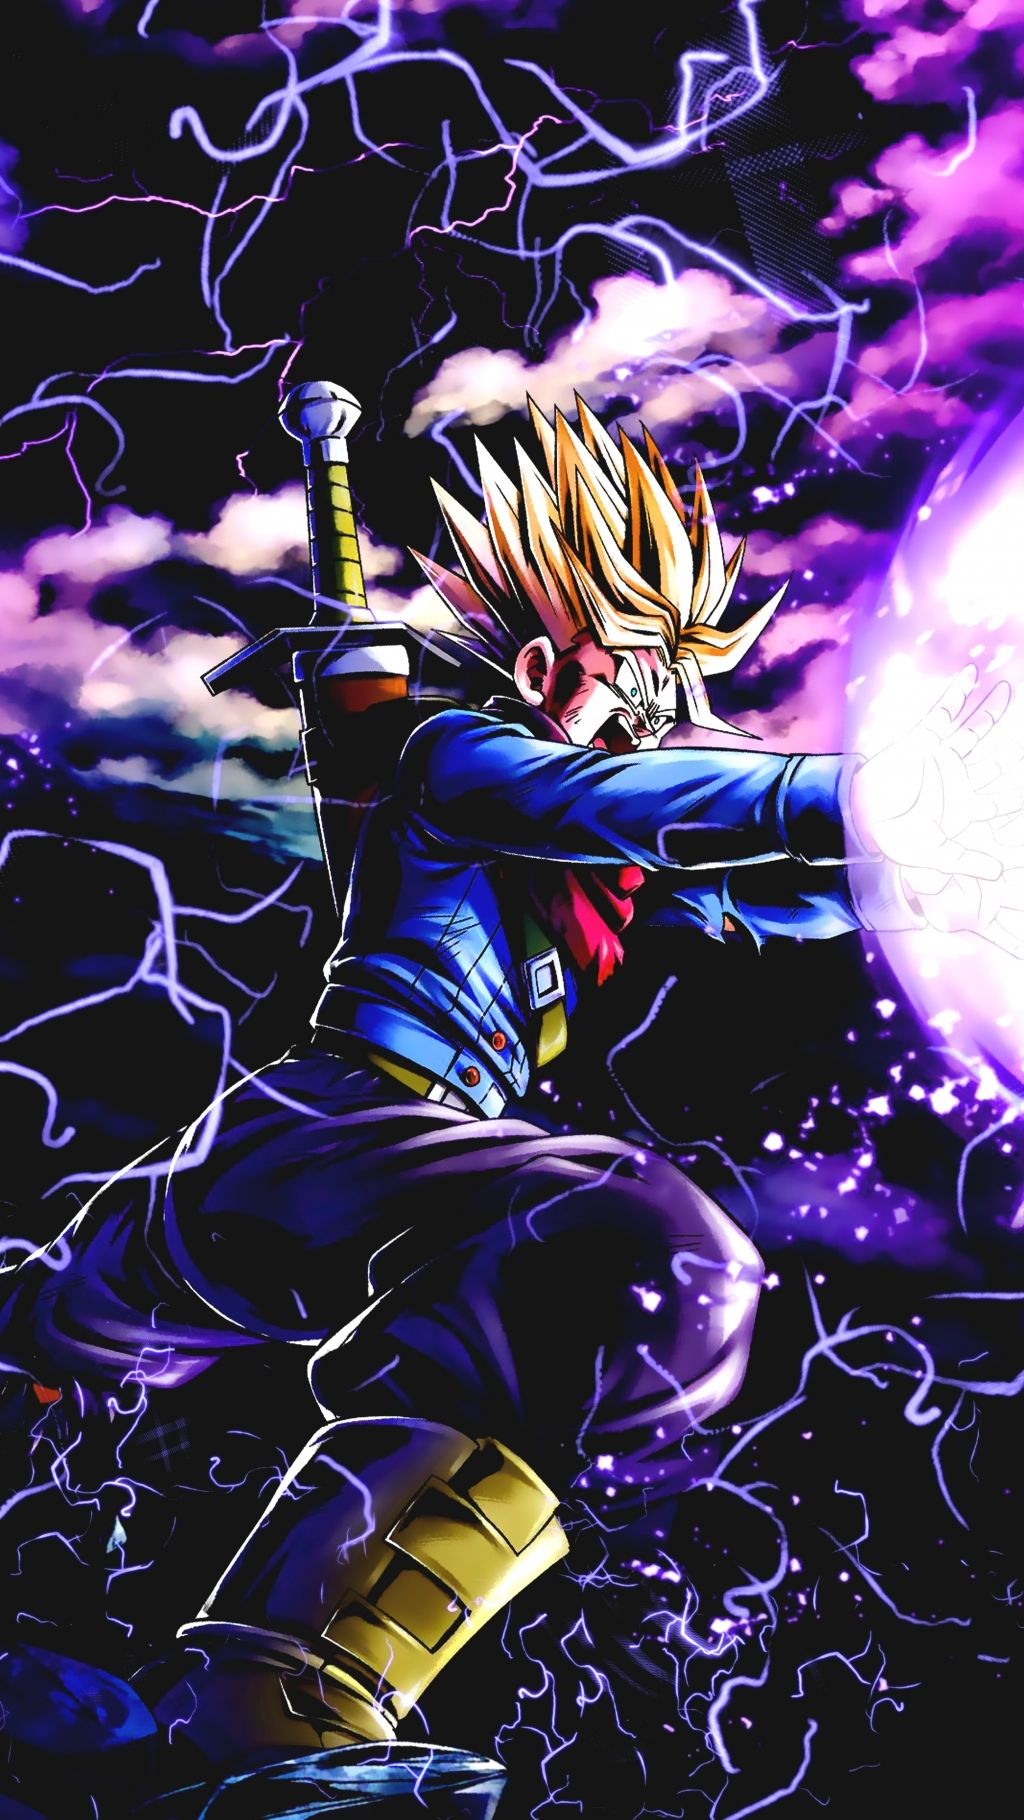 20 4k Wallpapers Of Dbz And Super For Phones In 2020 Dragon Ball Super Art Anime Dragon Ball Super Anime Dragon Ball